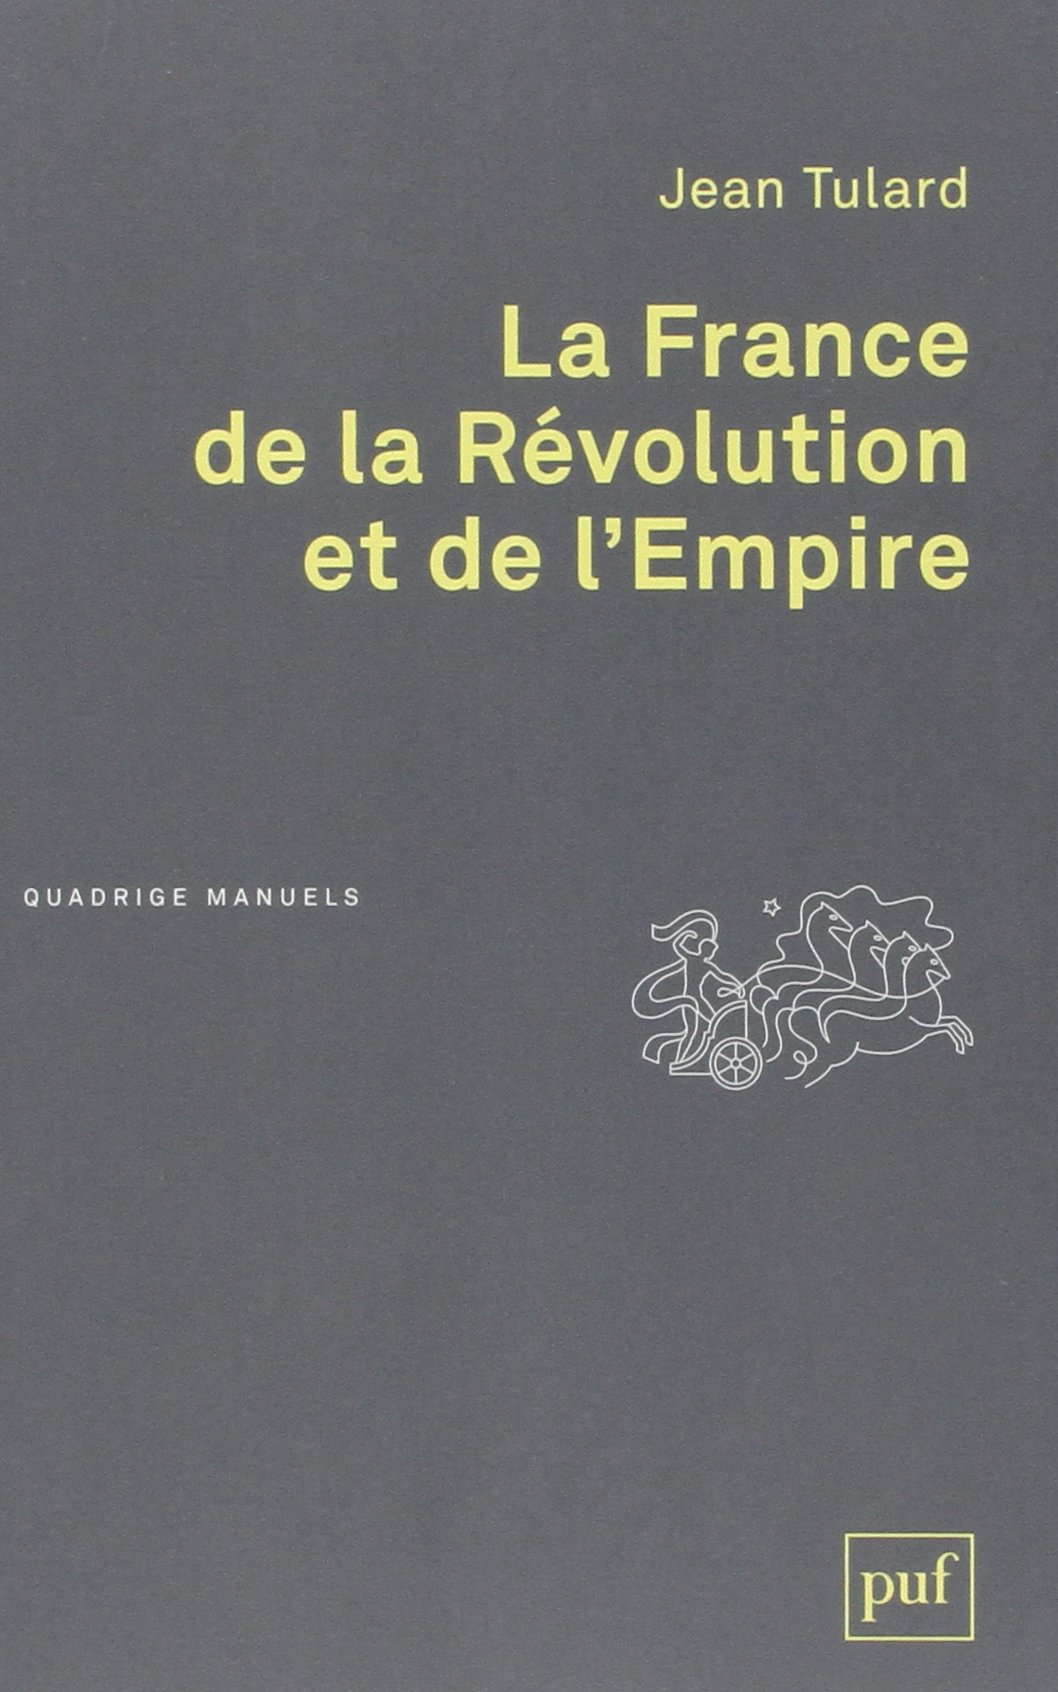 Amazon.fr - La France de la Révolution et de l'Empire - Jean Tulard - Livres